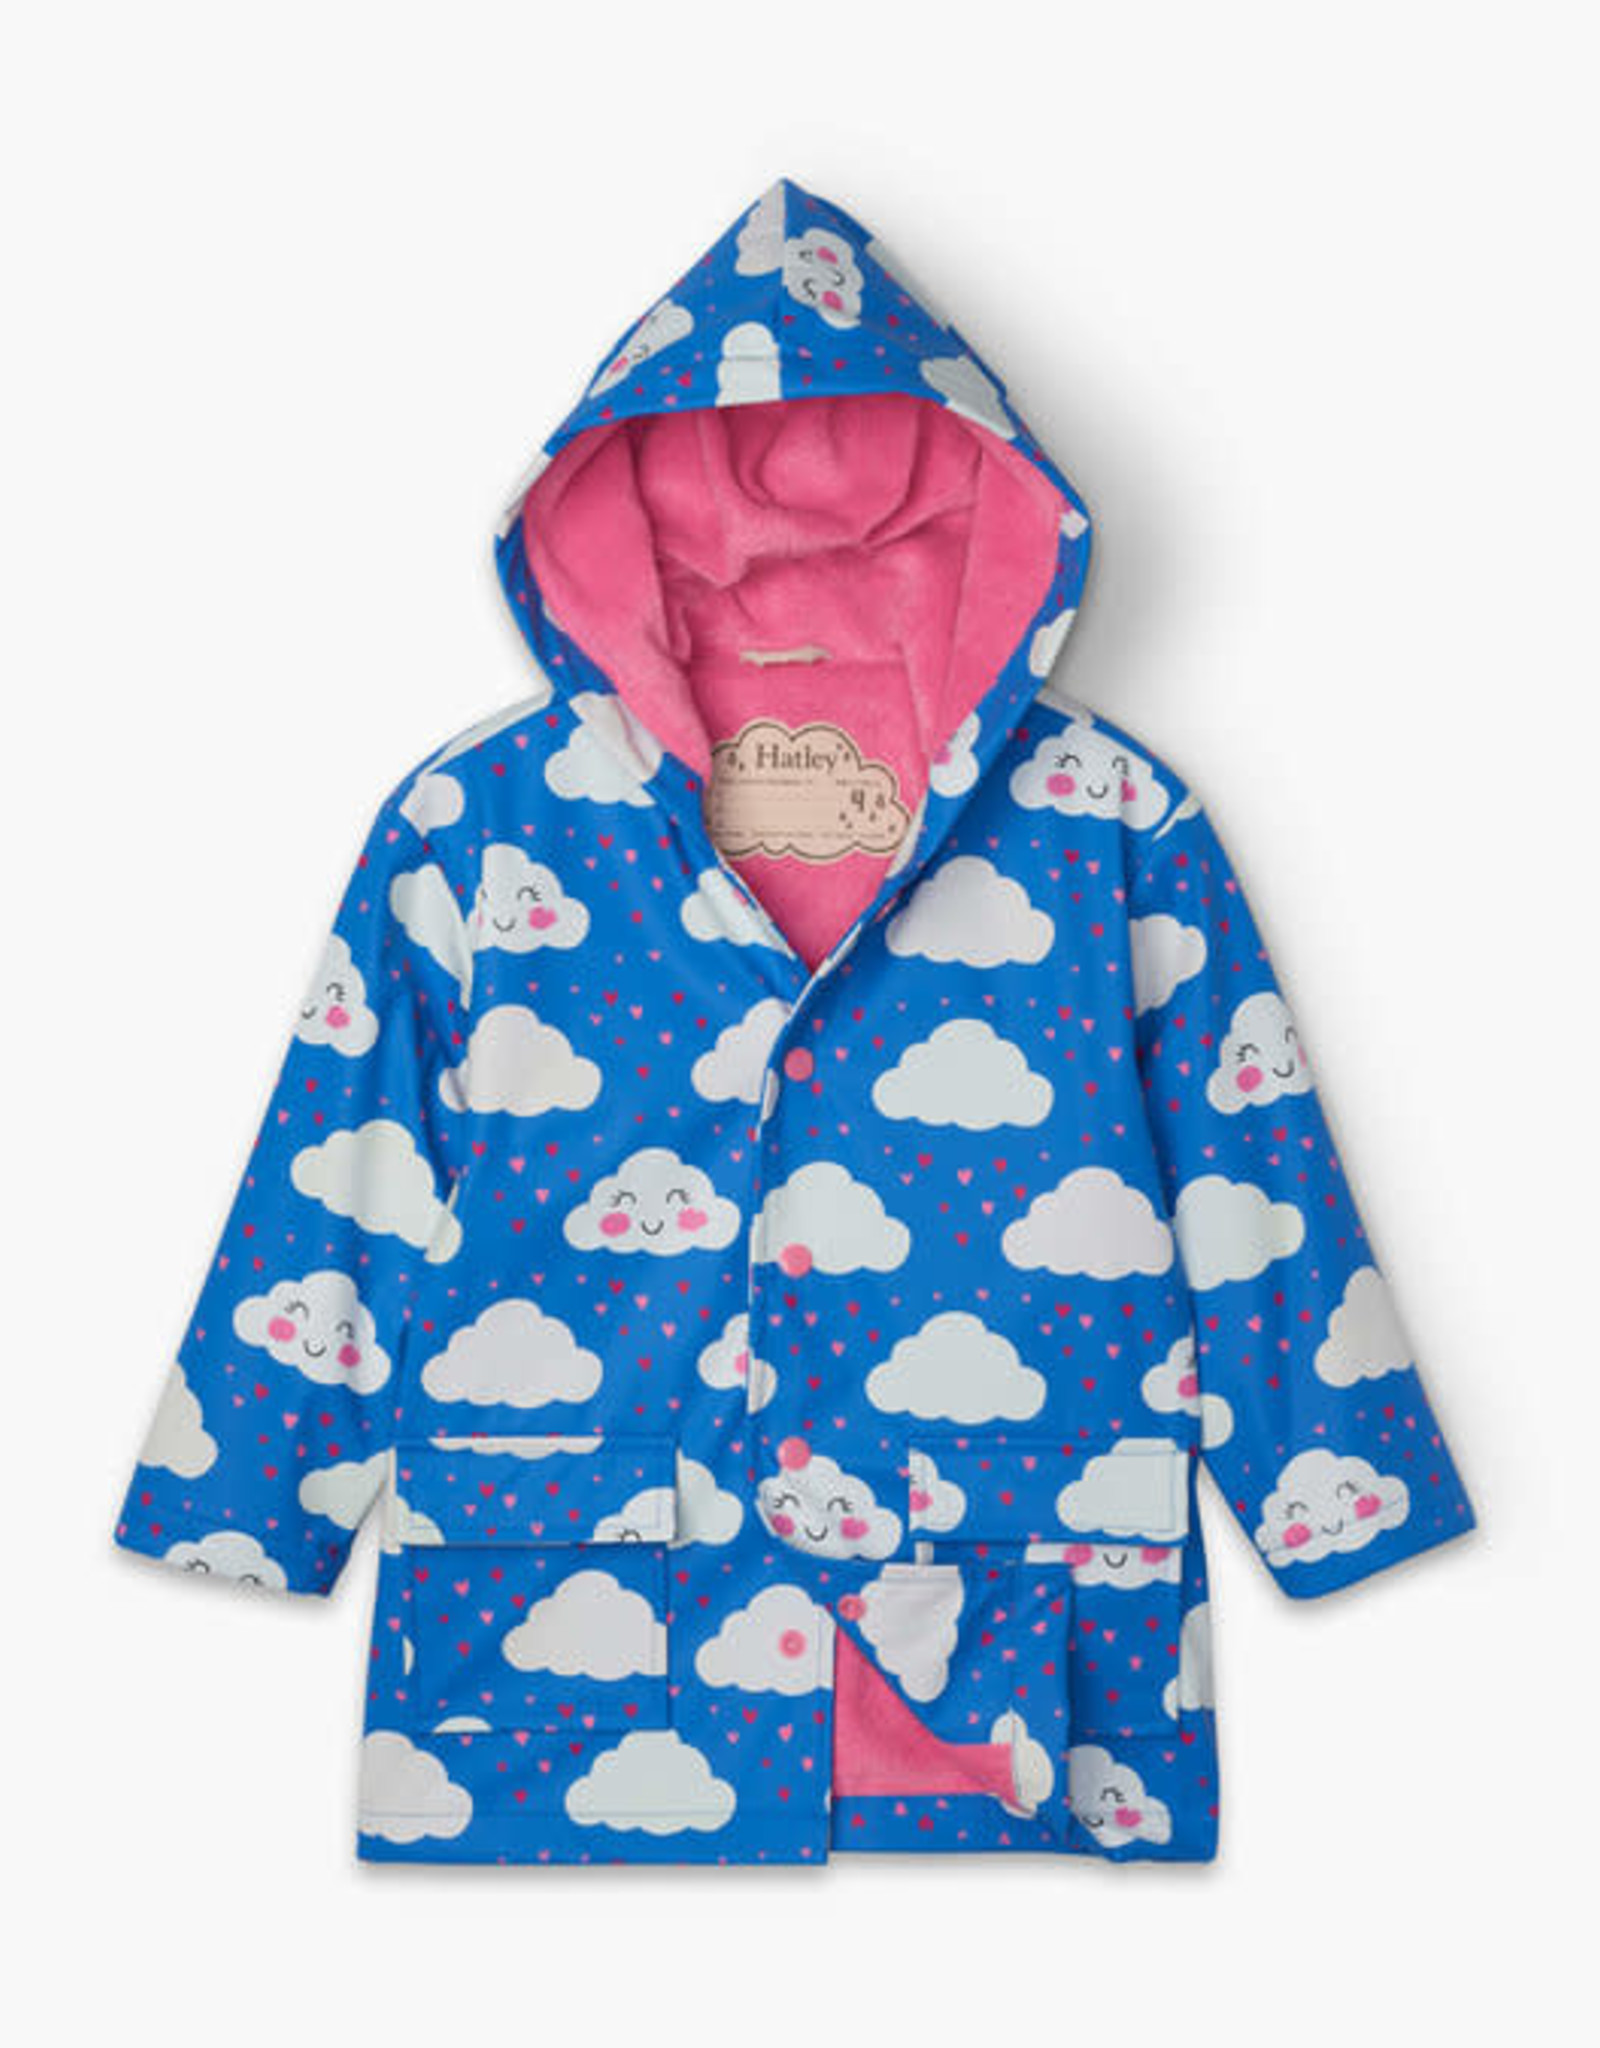 Hatley Hatley Baby Raincoat Cheerful Clouds Colour Changing